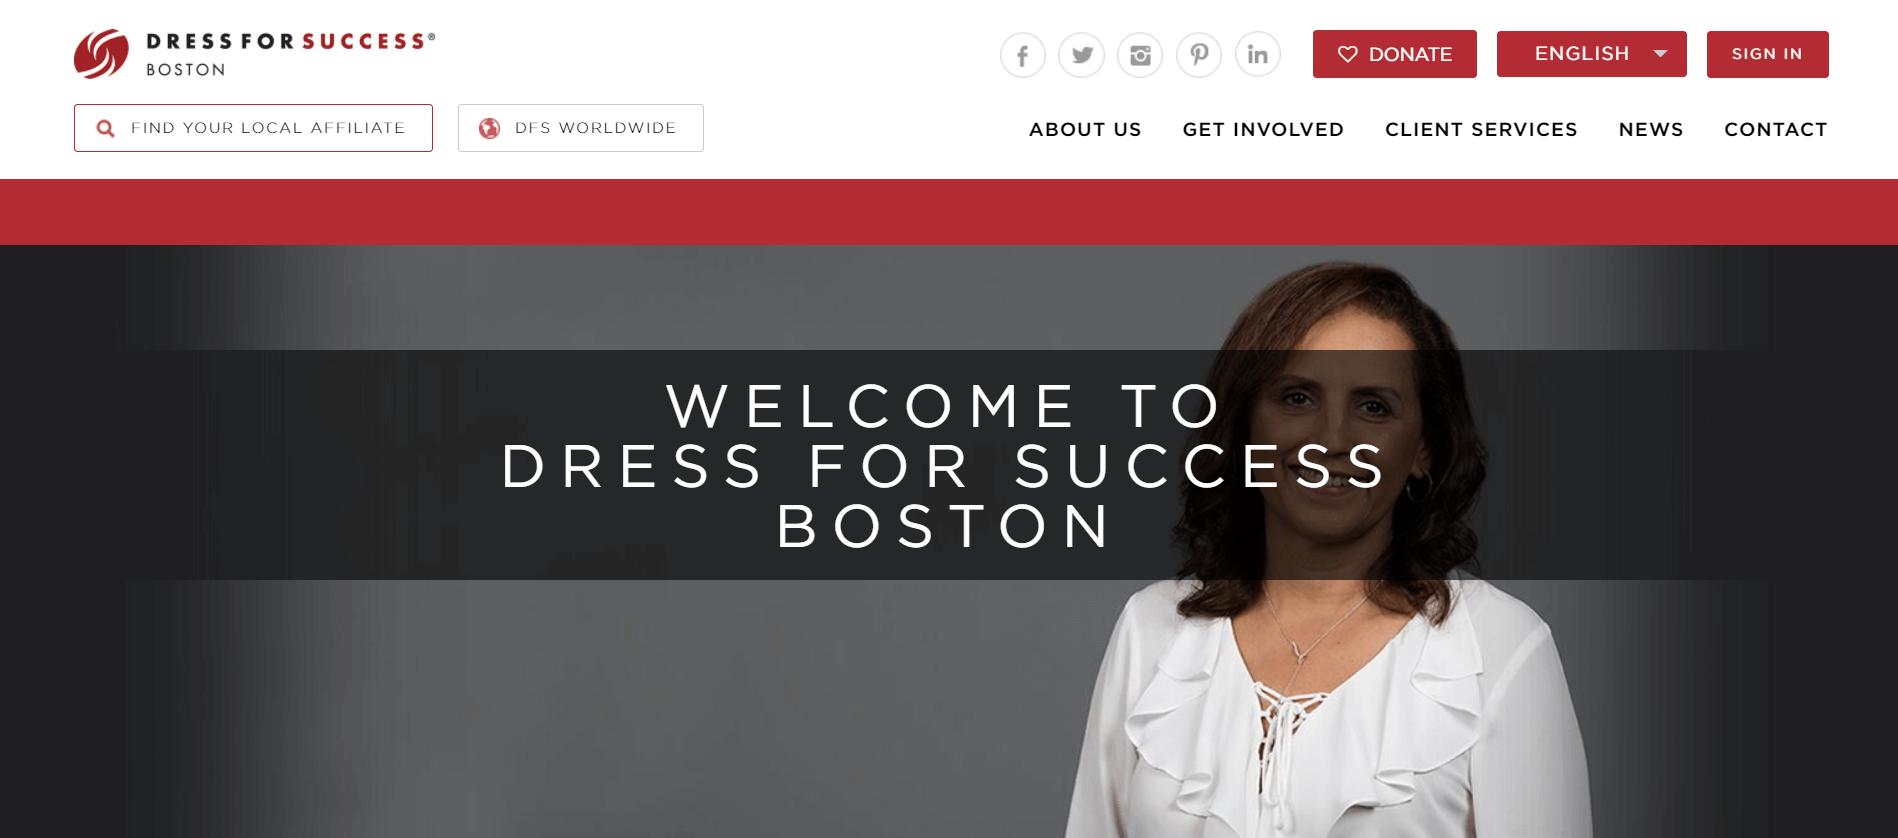 dress for success home page